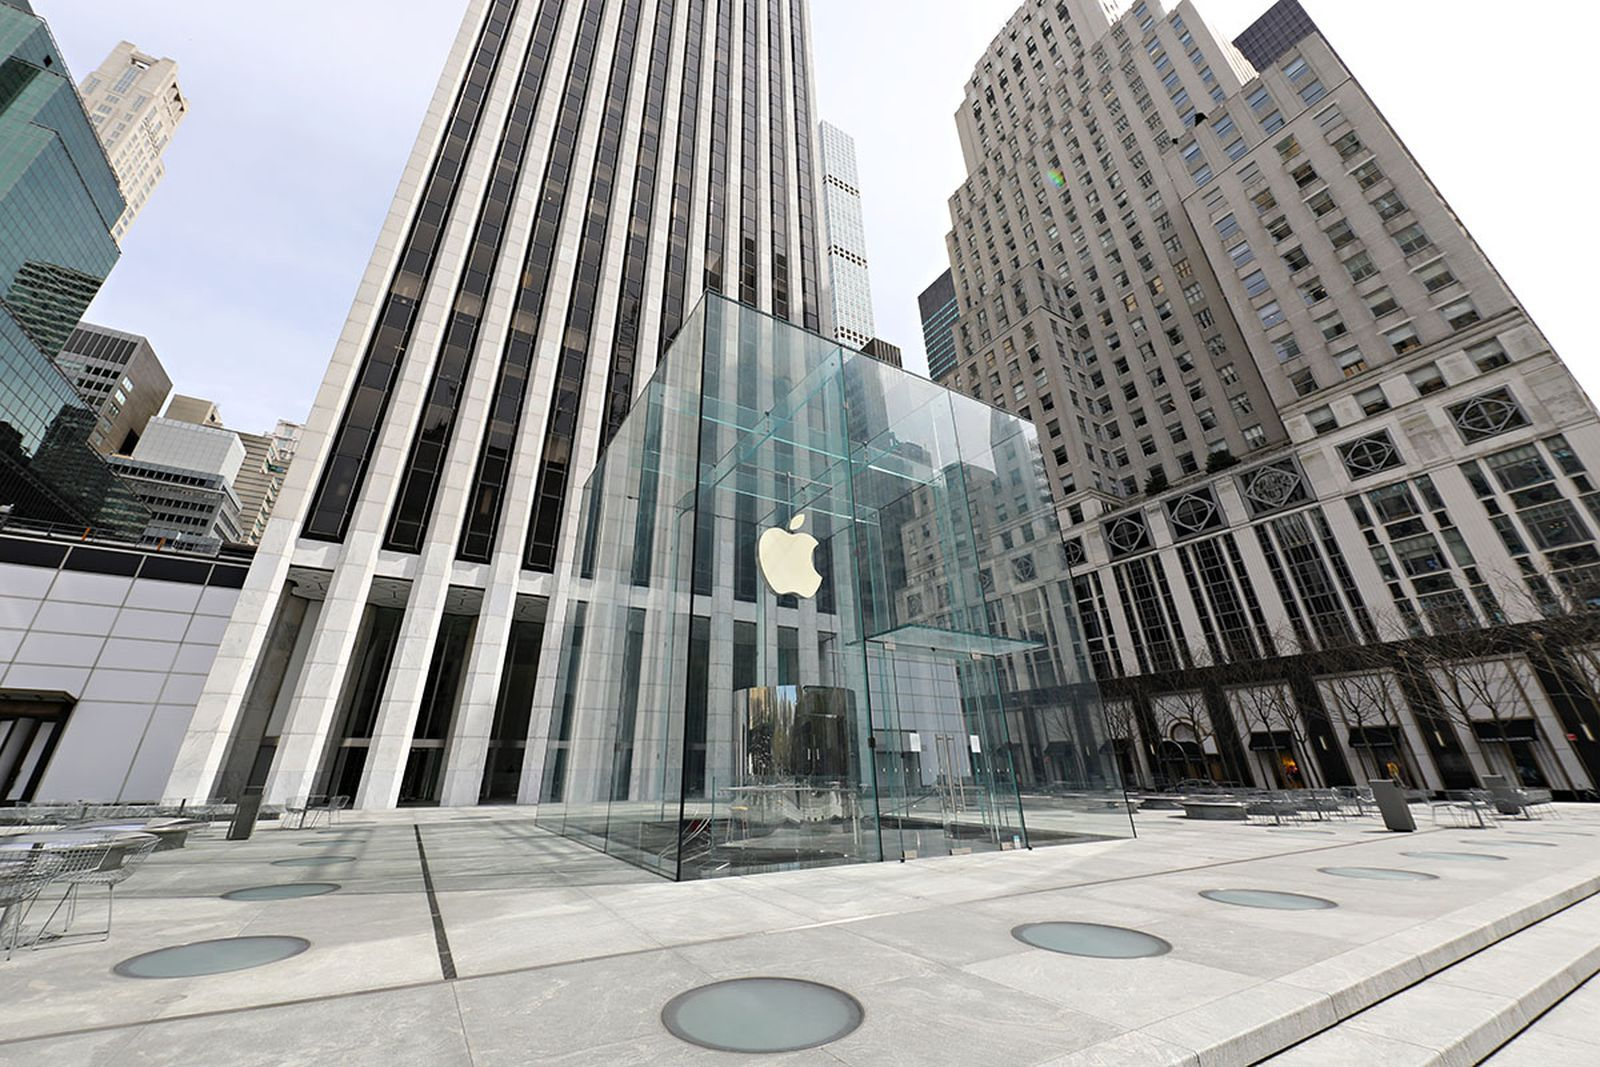 Apple Briefly Overtakes Saudi Aramco To Become World's Largest Company